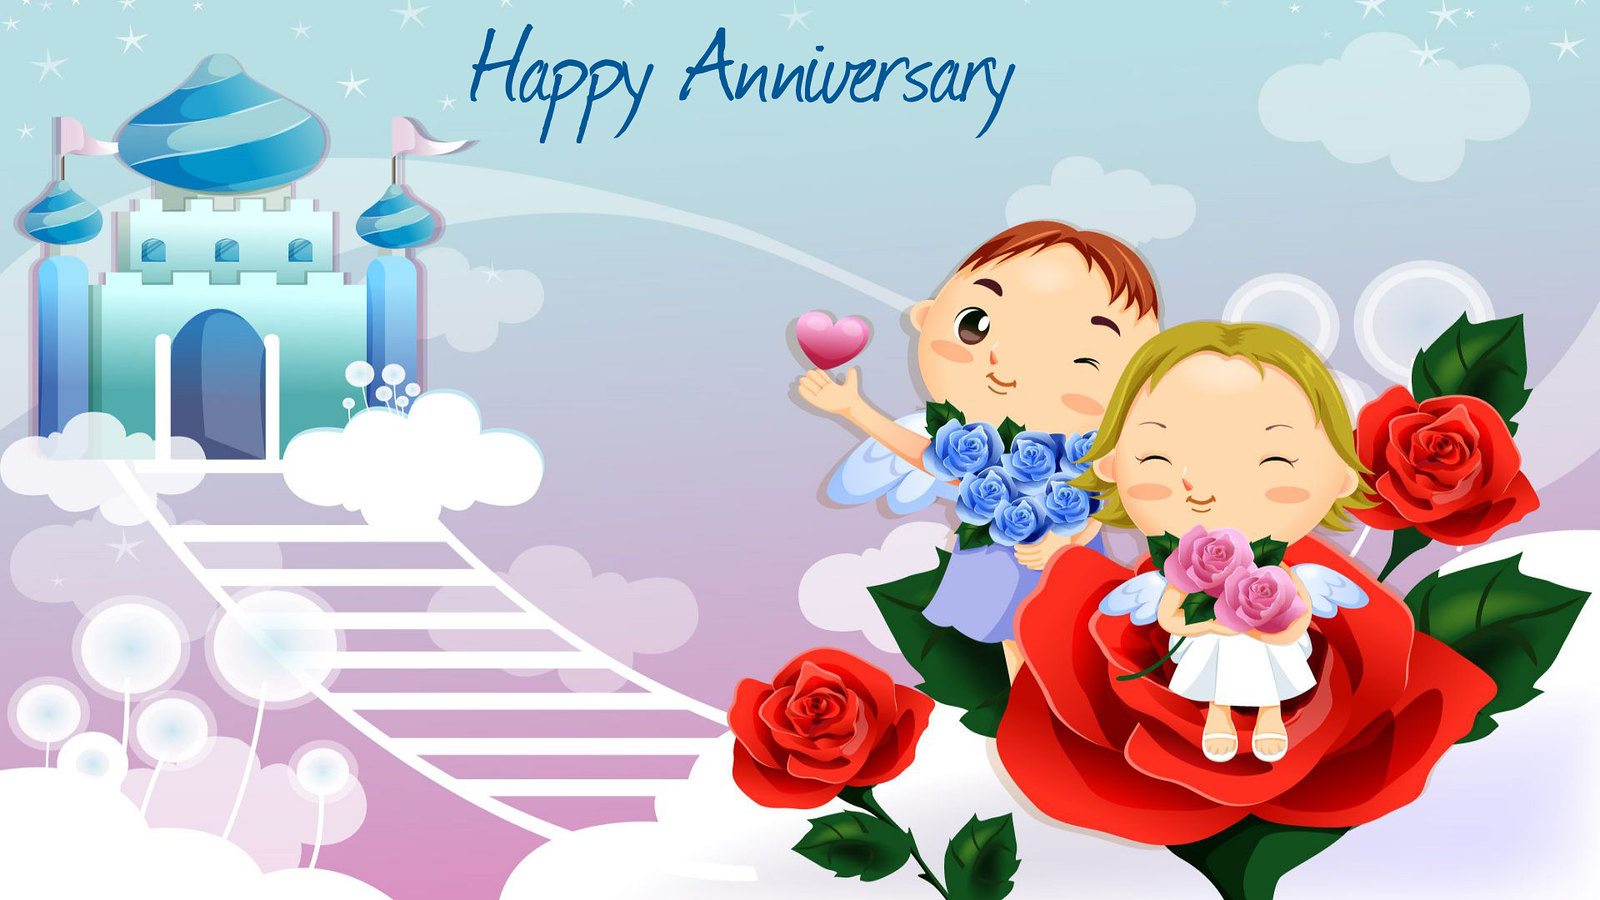 Happy Anniversary Wishes Wallpapers For Sister